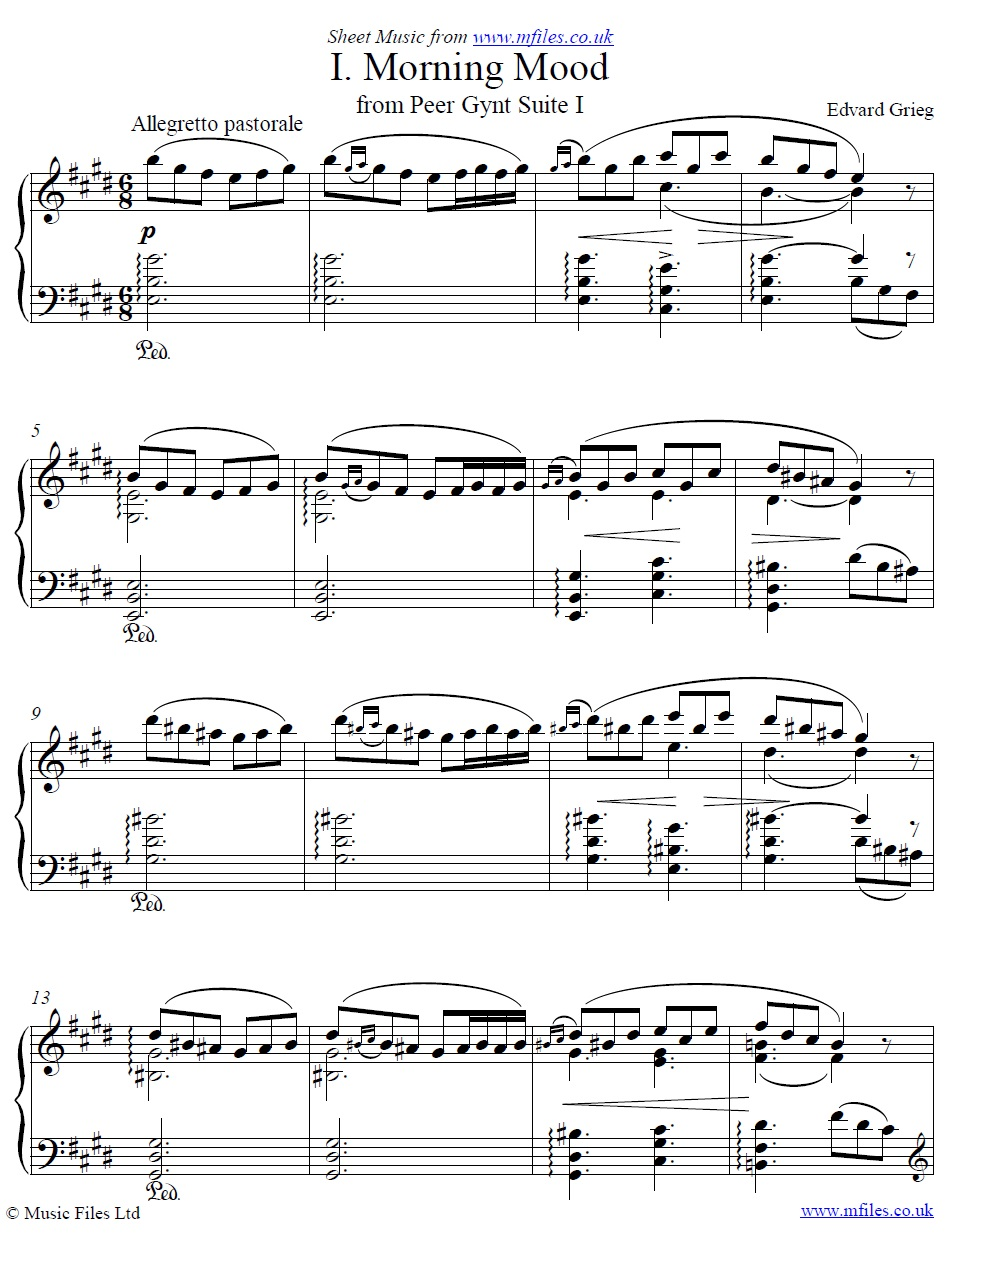 Grieg's Morning Mood from Peer Gynt for piano - sheet music 1st page